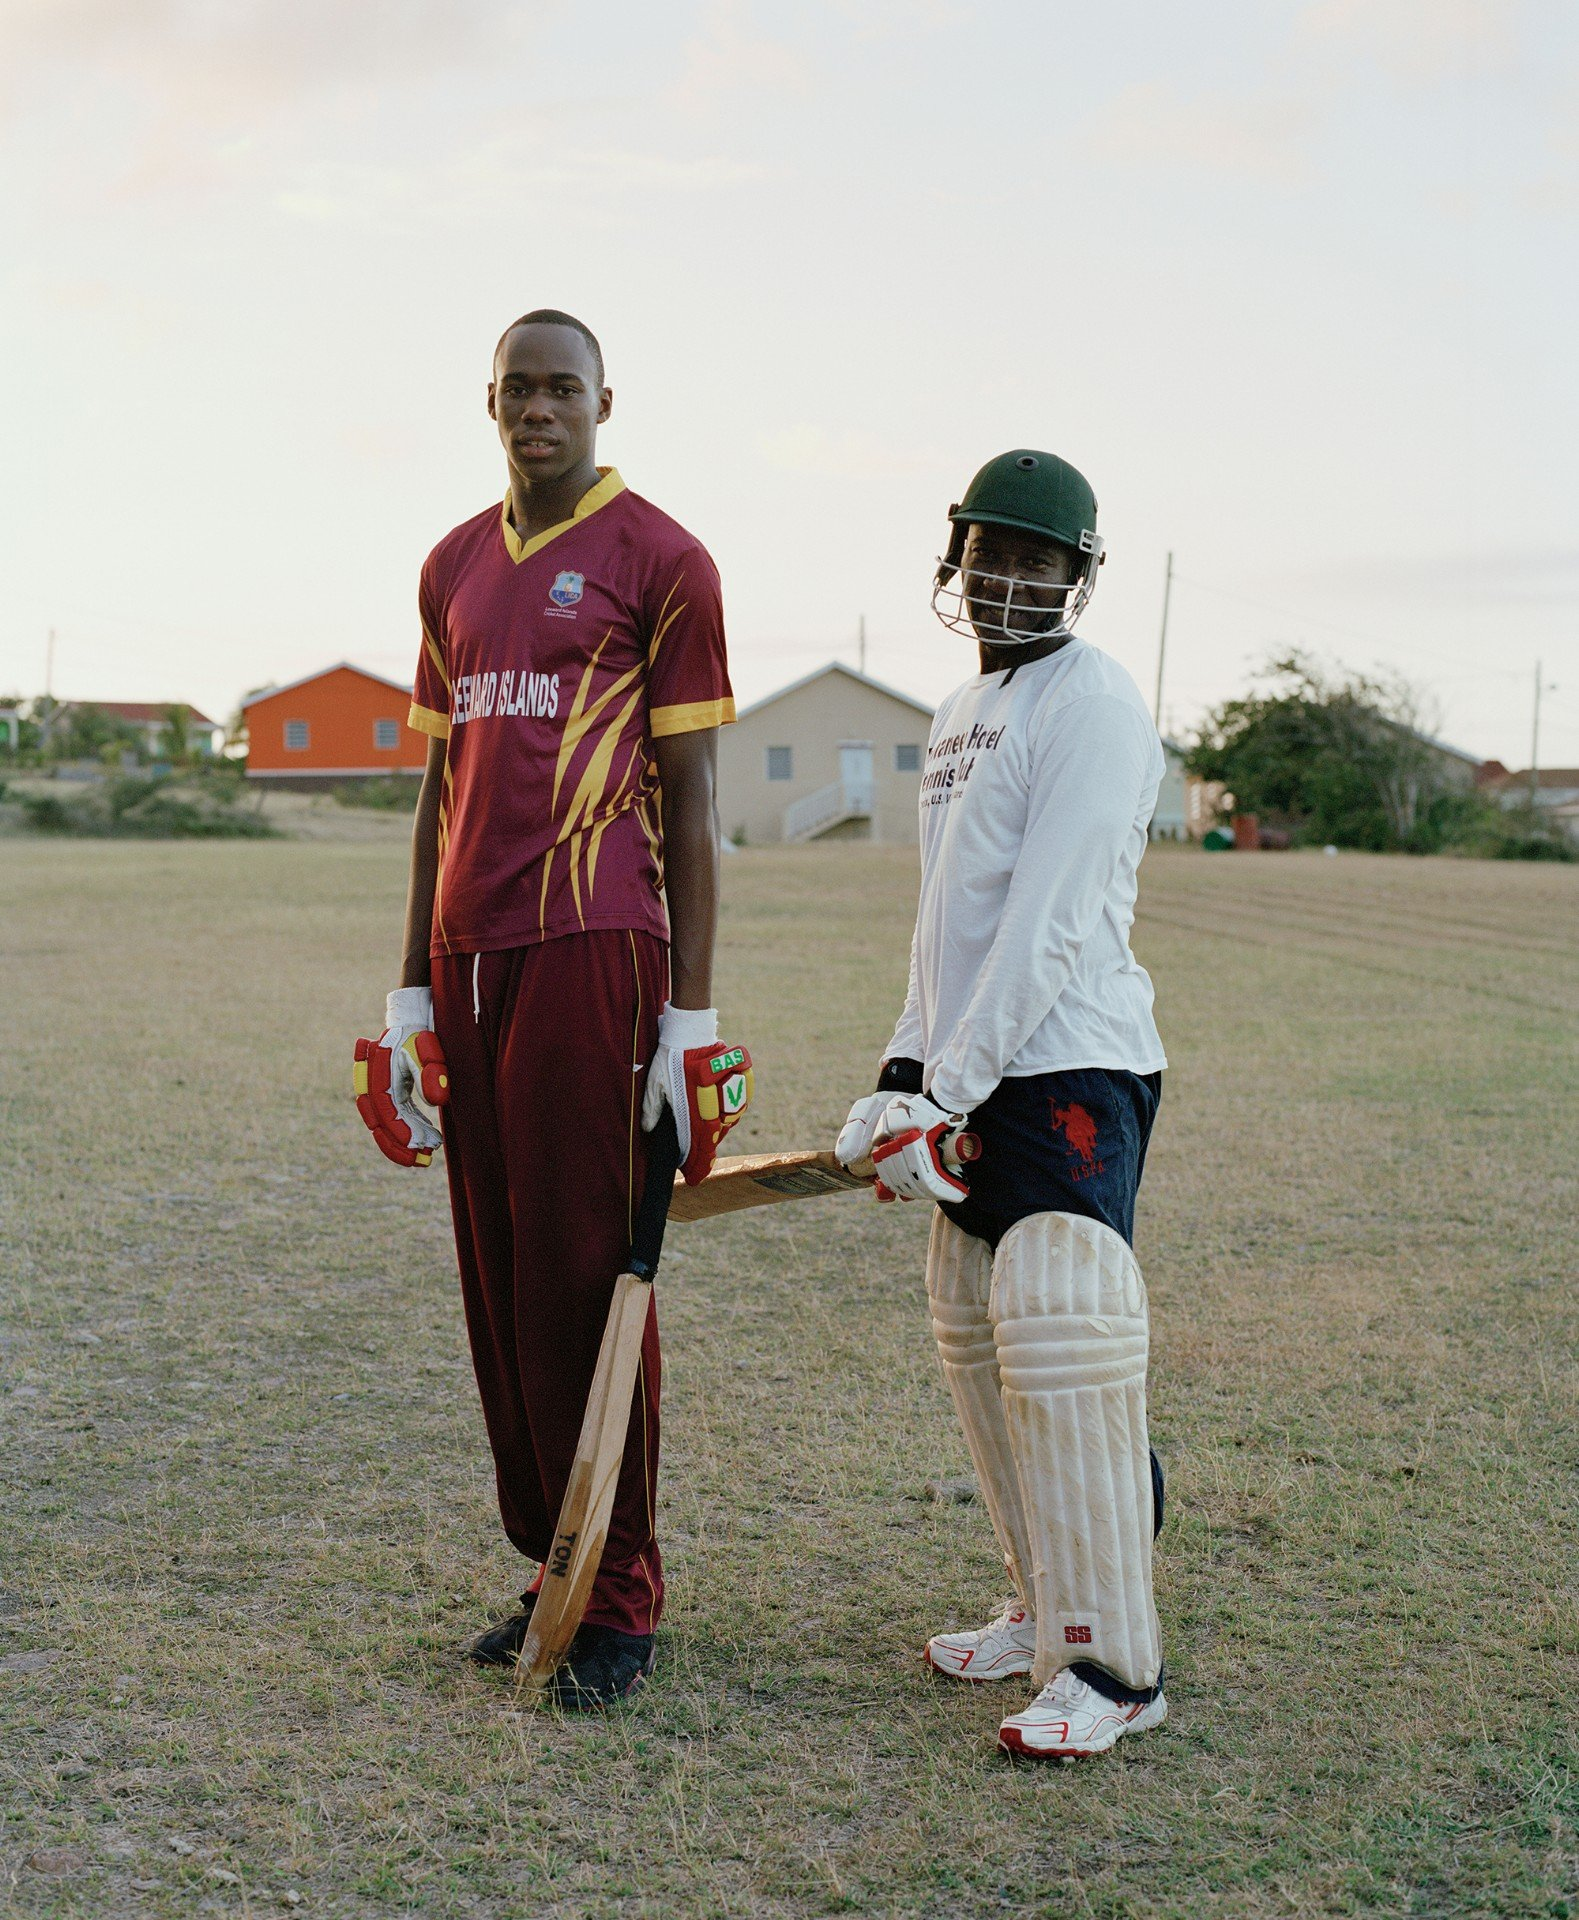 cricket players color portrait photography in the Caribbean island of Nevis, by Catherine Hyland